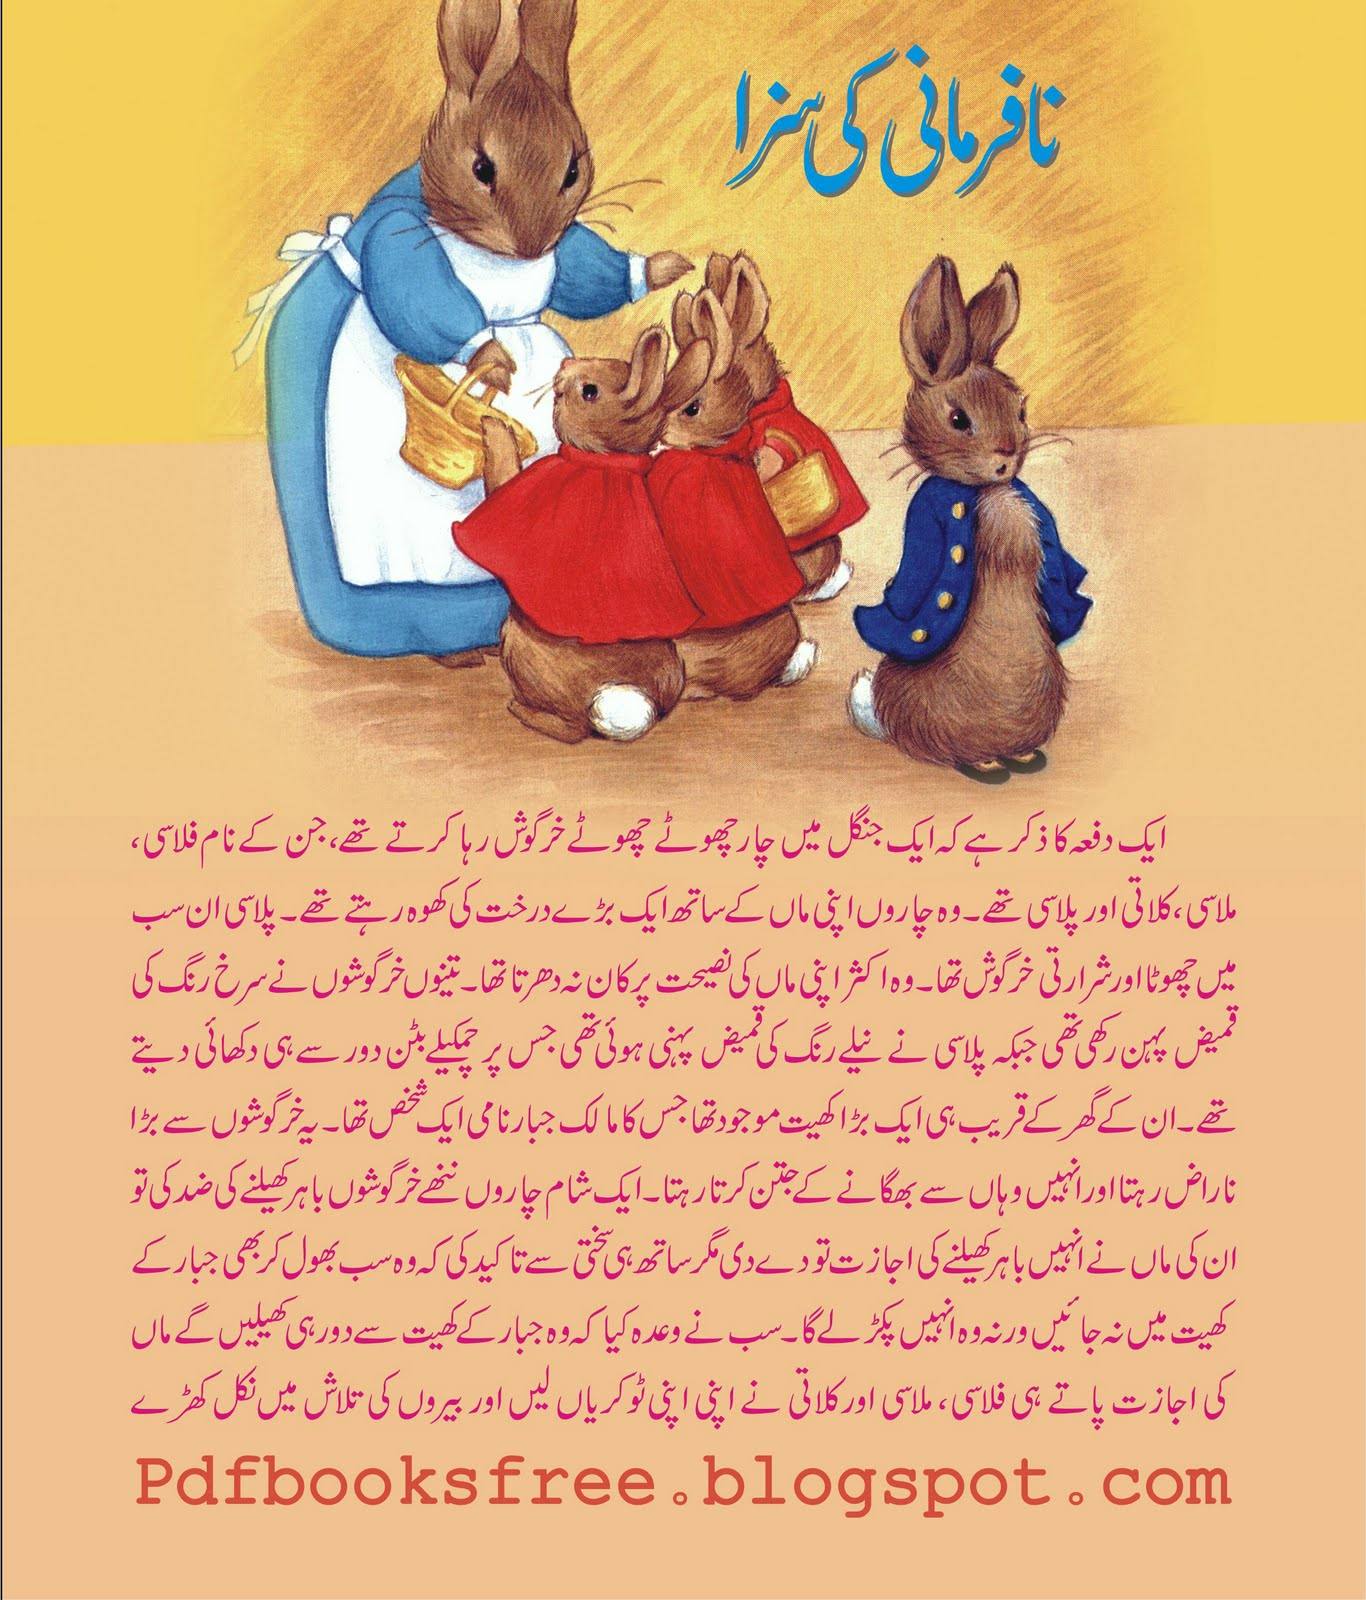 Moazzam Javed Bukhari. This is a Kids learning story book